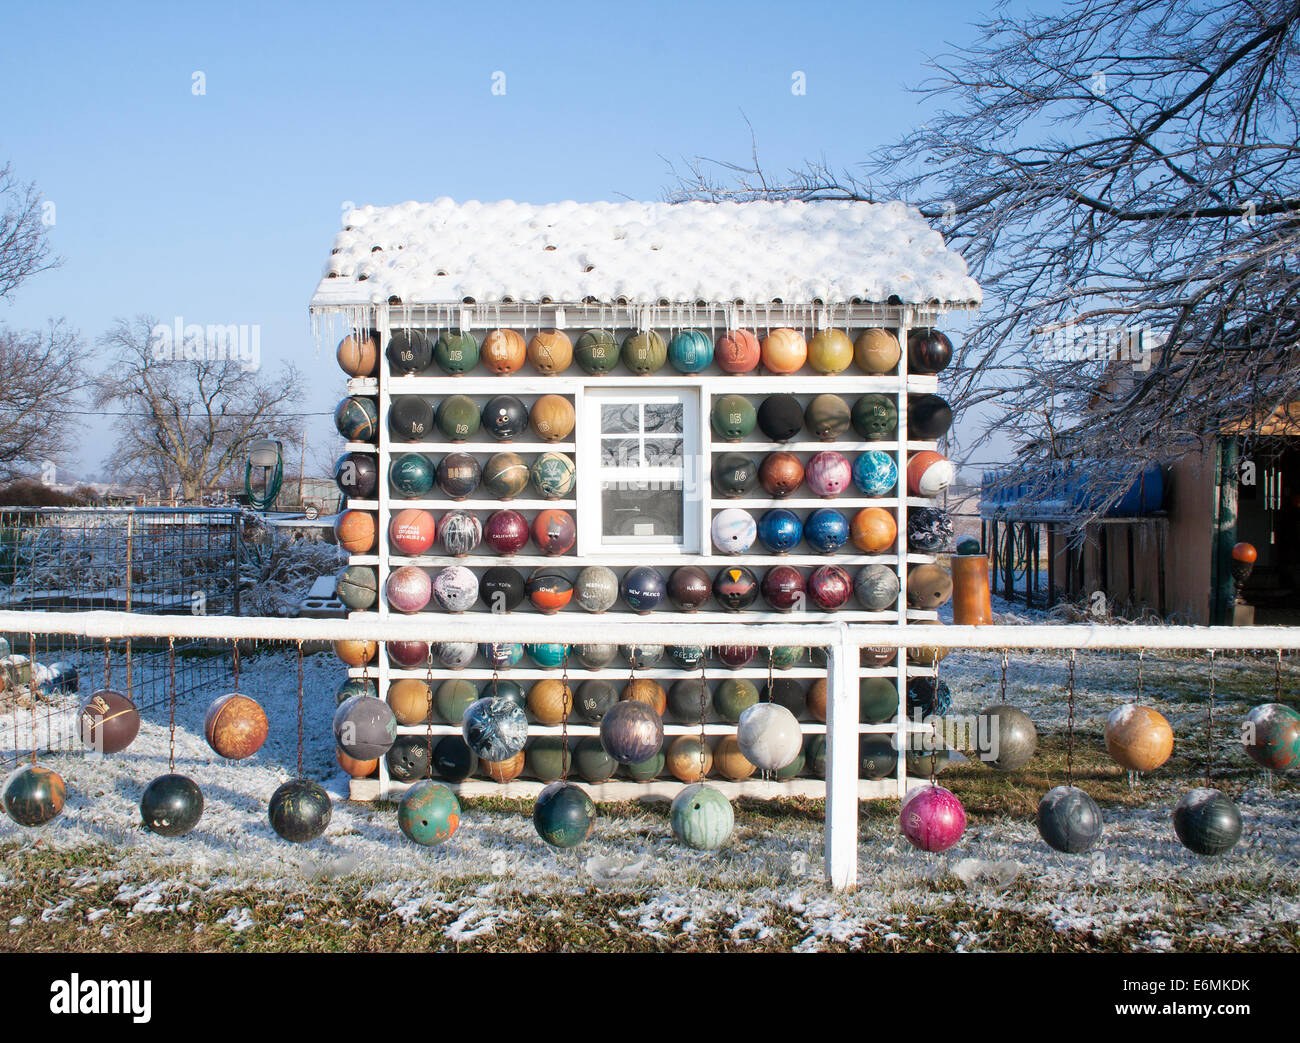 Bowling Ball House in Nowata Oklahoma - Stock Image